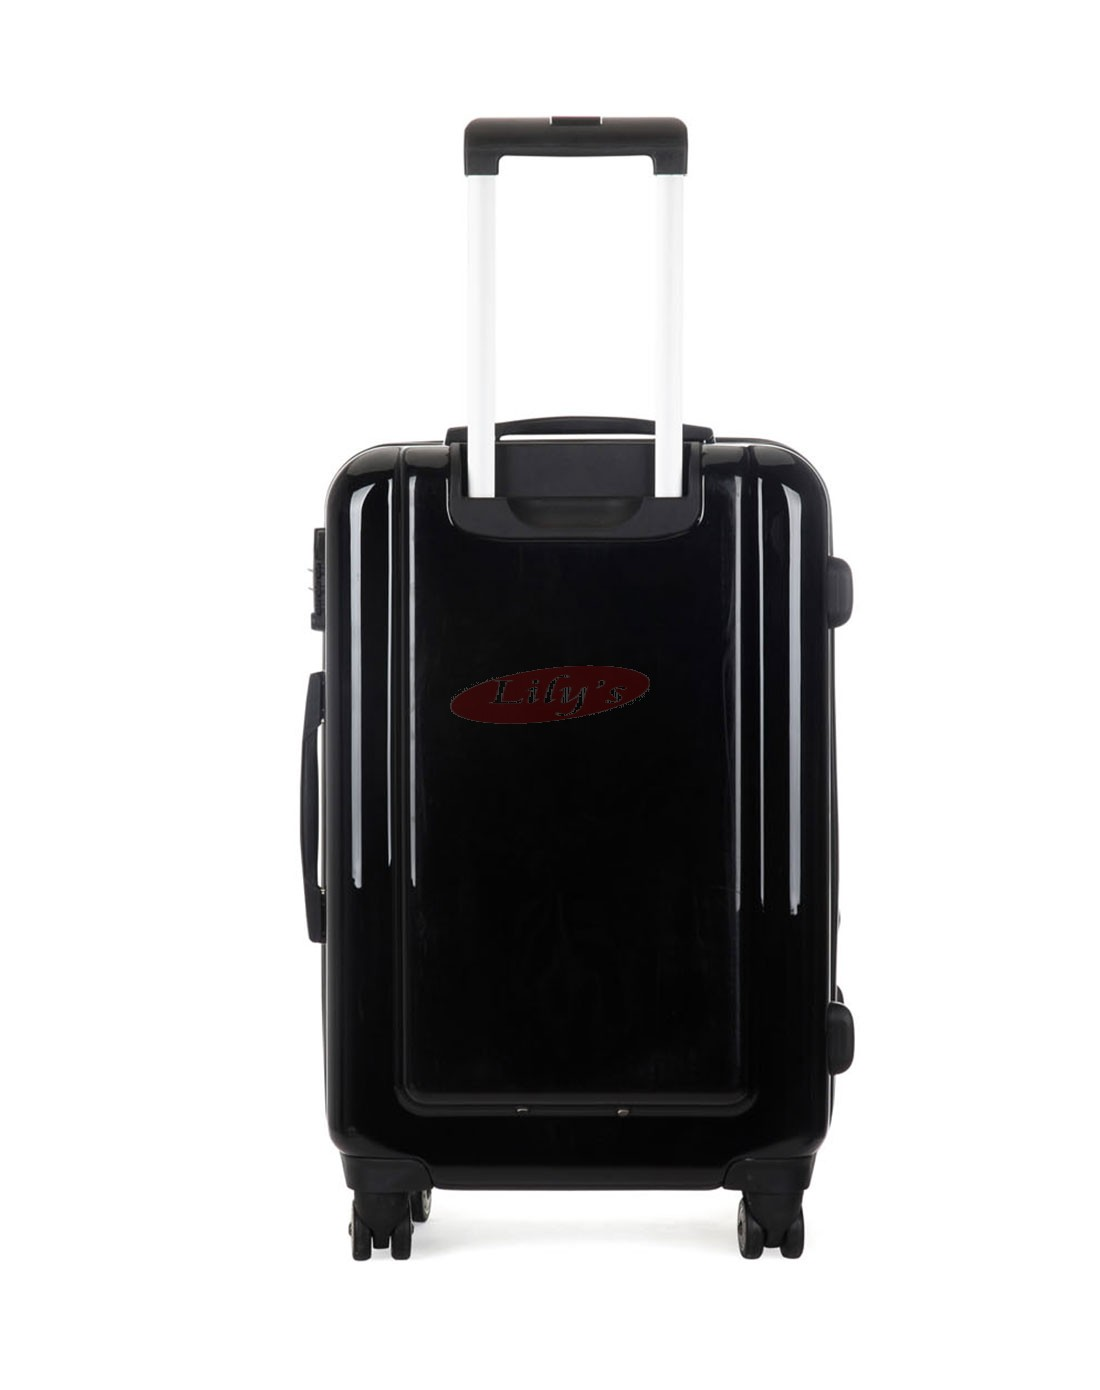 AIRCROSS Luggage A55 Black Hard Case Expandable Trolley Luggage - 26""